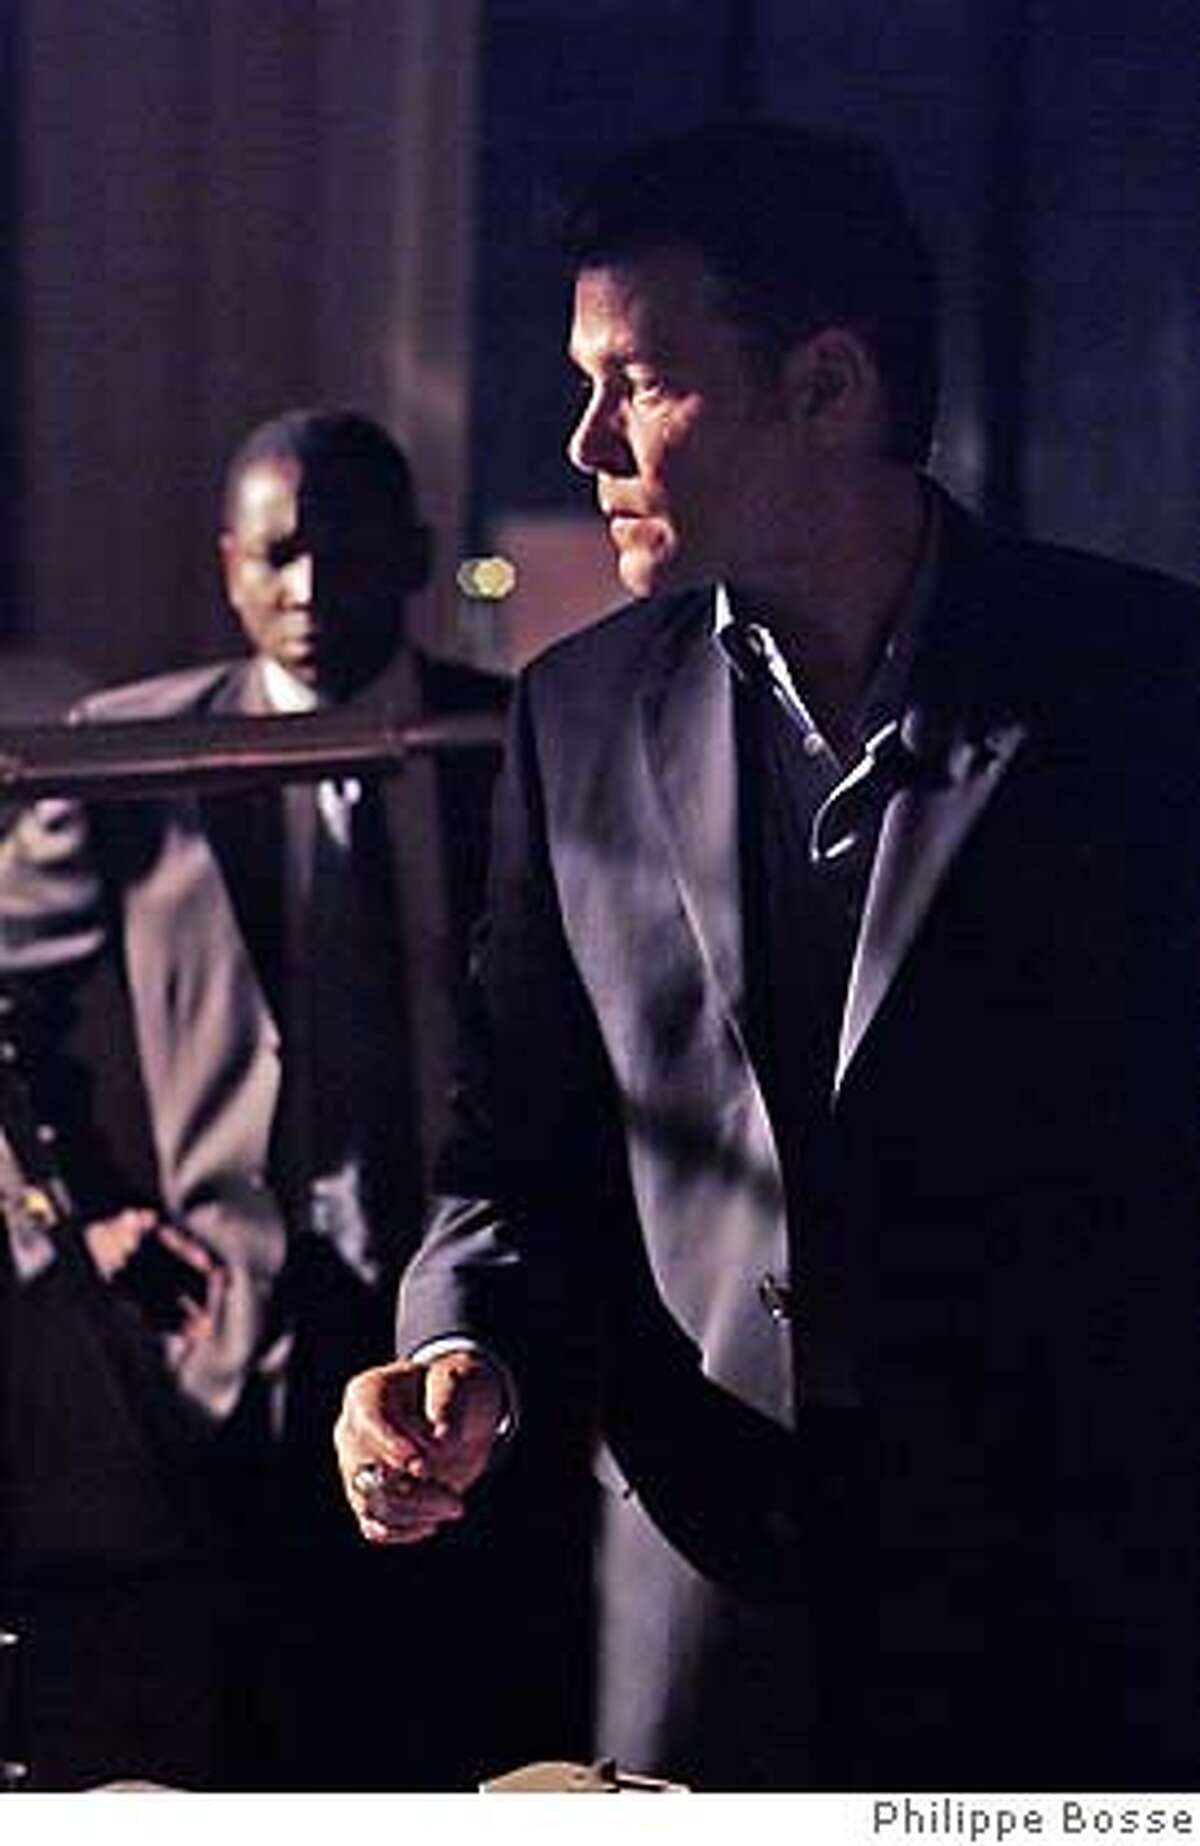 3. Ford Cole (Ray Liotta, foreground) in SLOW BURN. Photo credit: Philippe Bosse